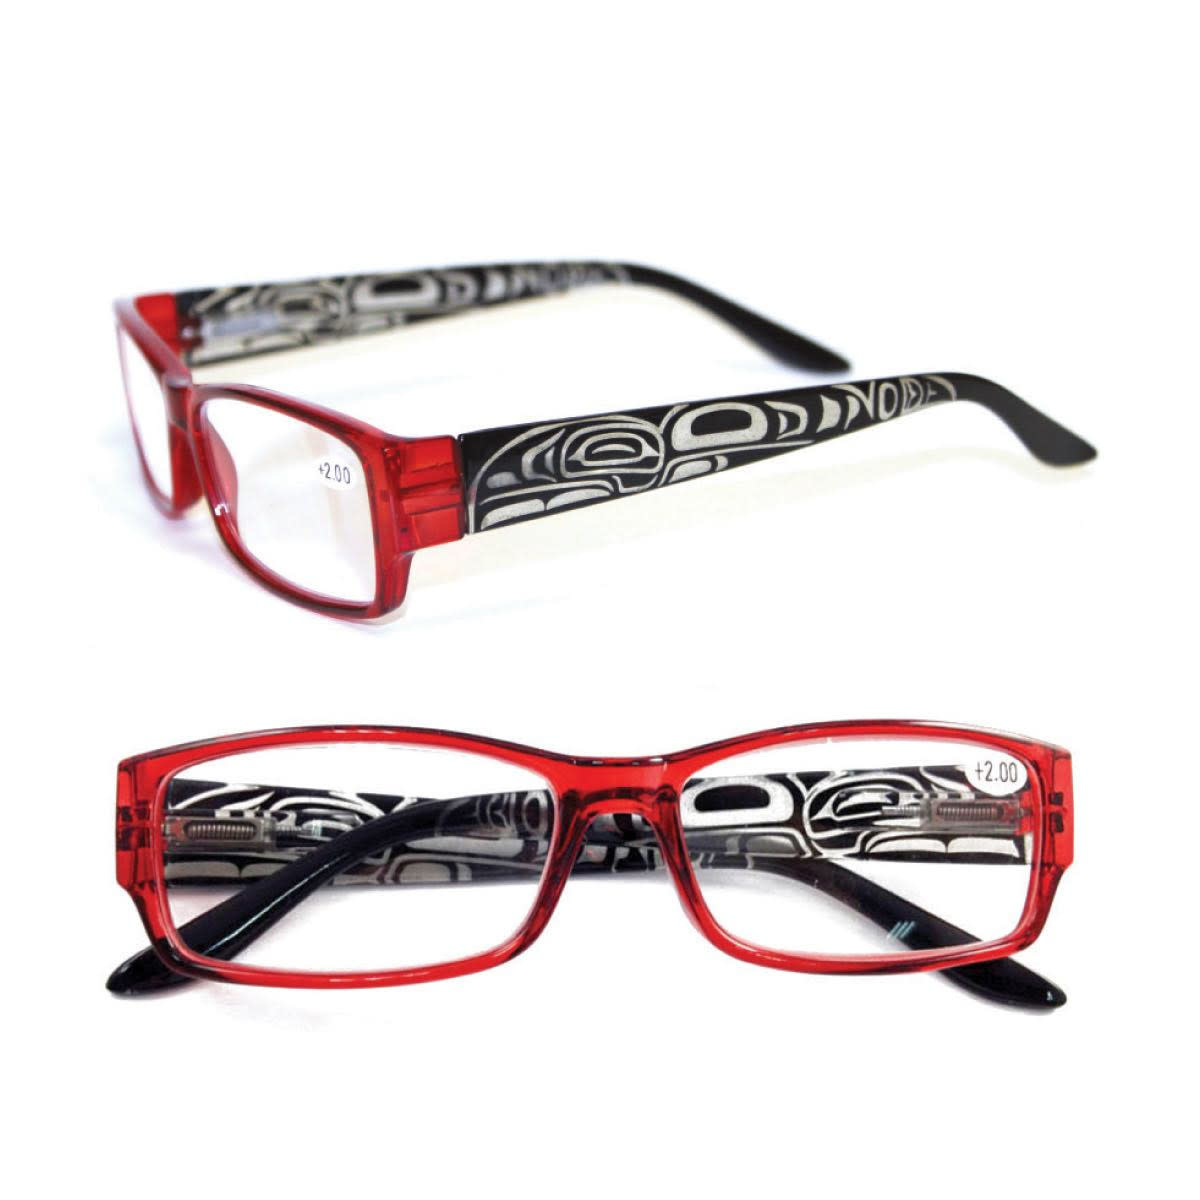 Adult Reading Glasses-1